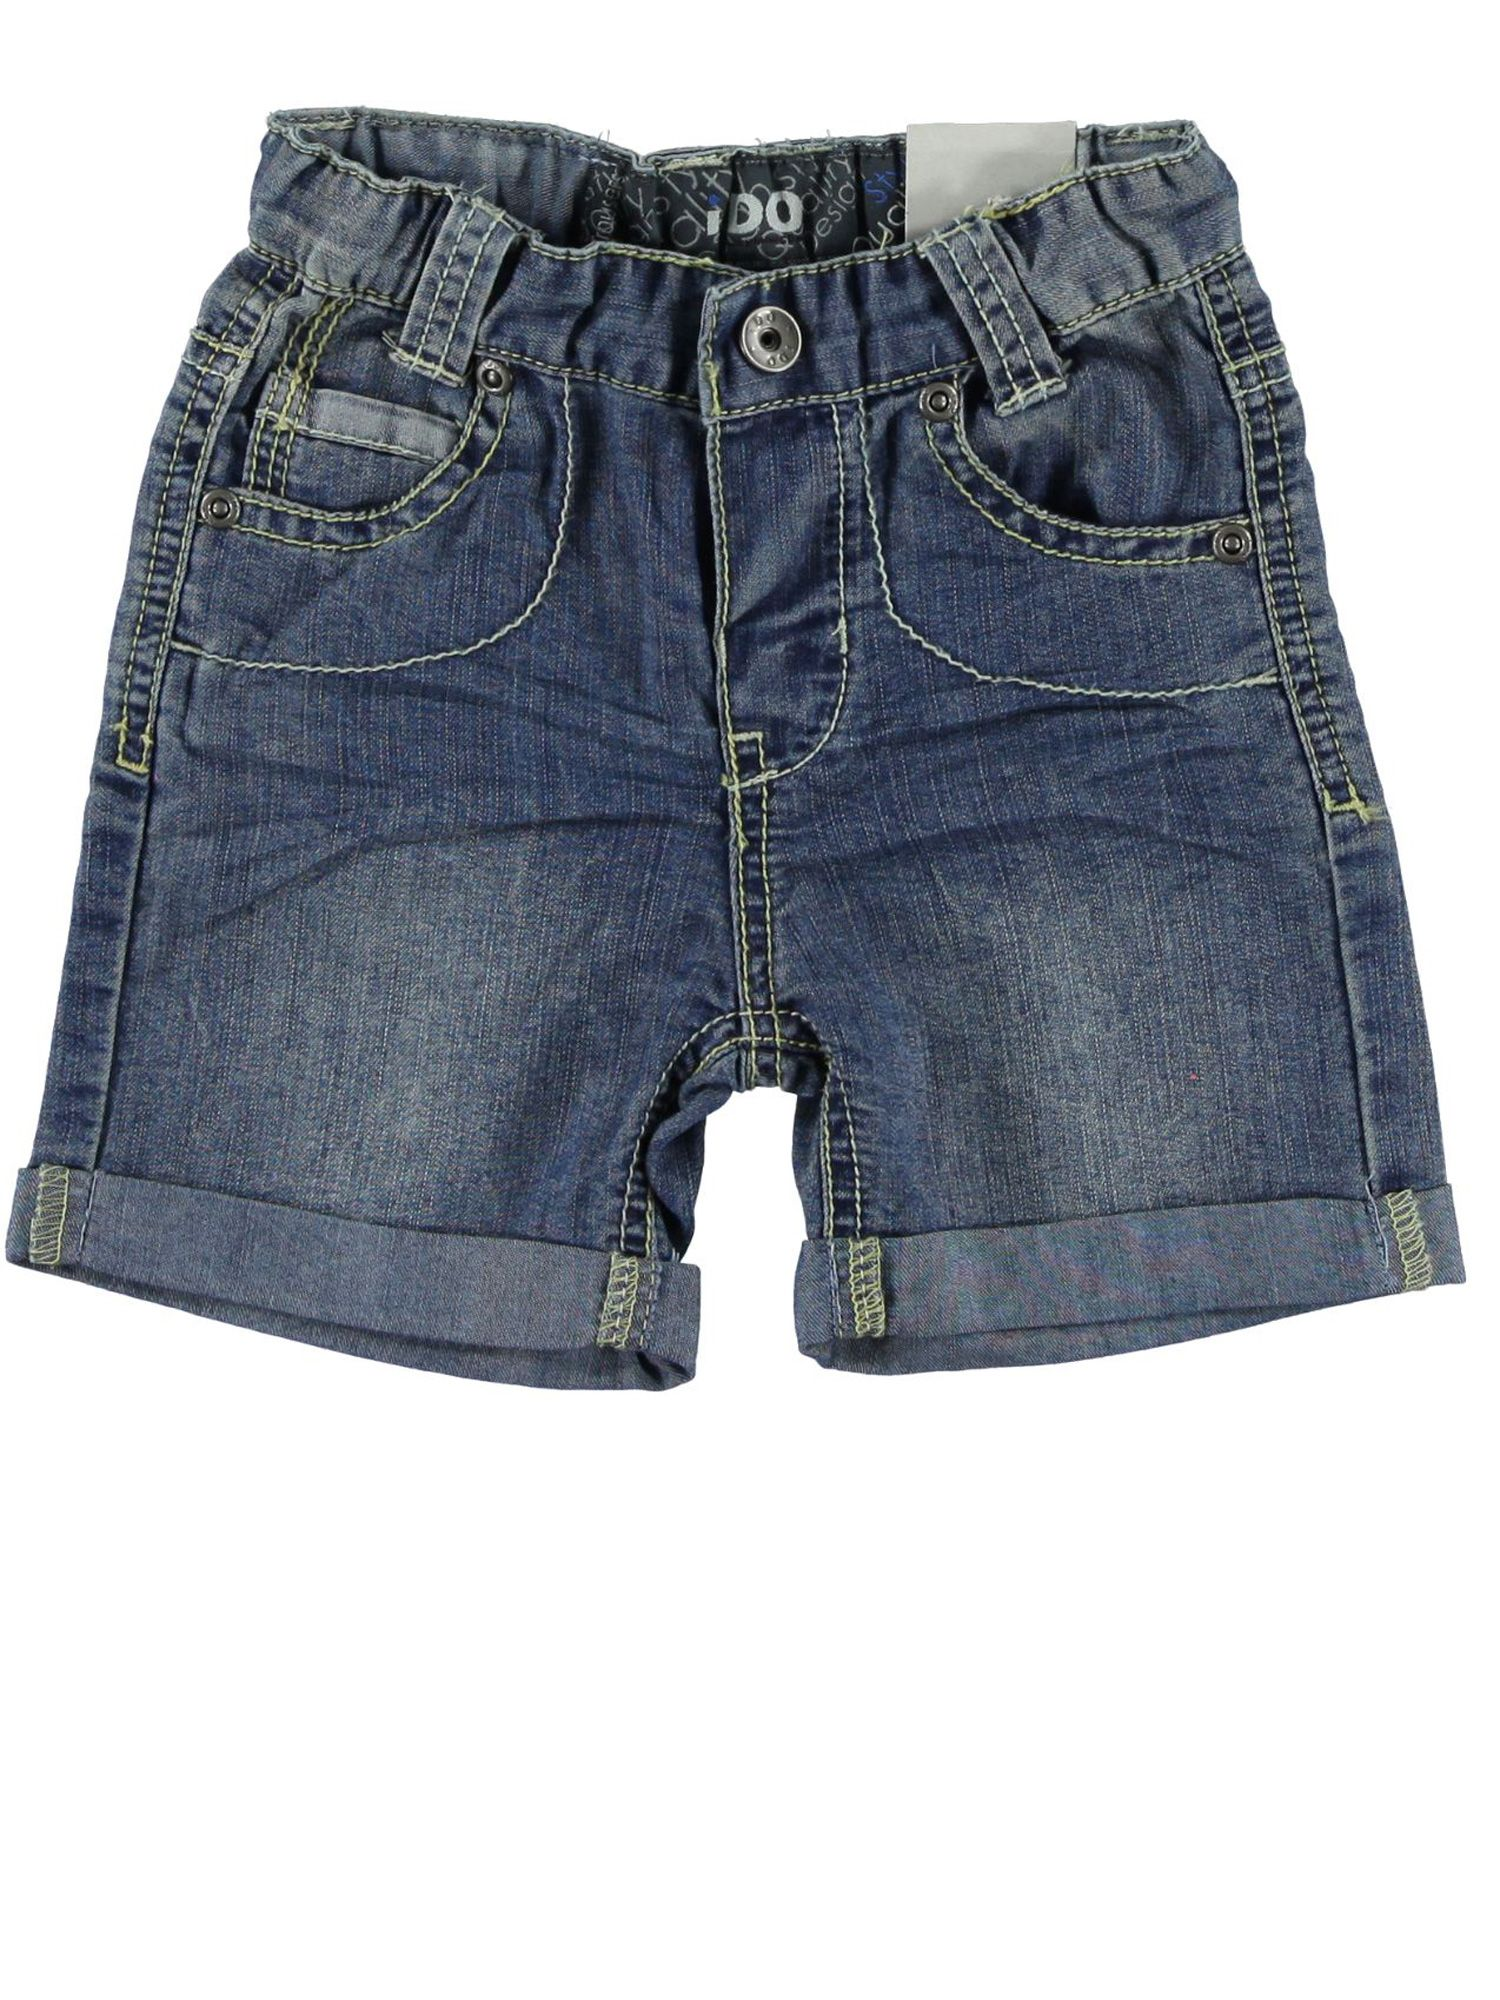 Boys stone washed denim bermuda shorts